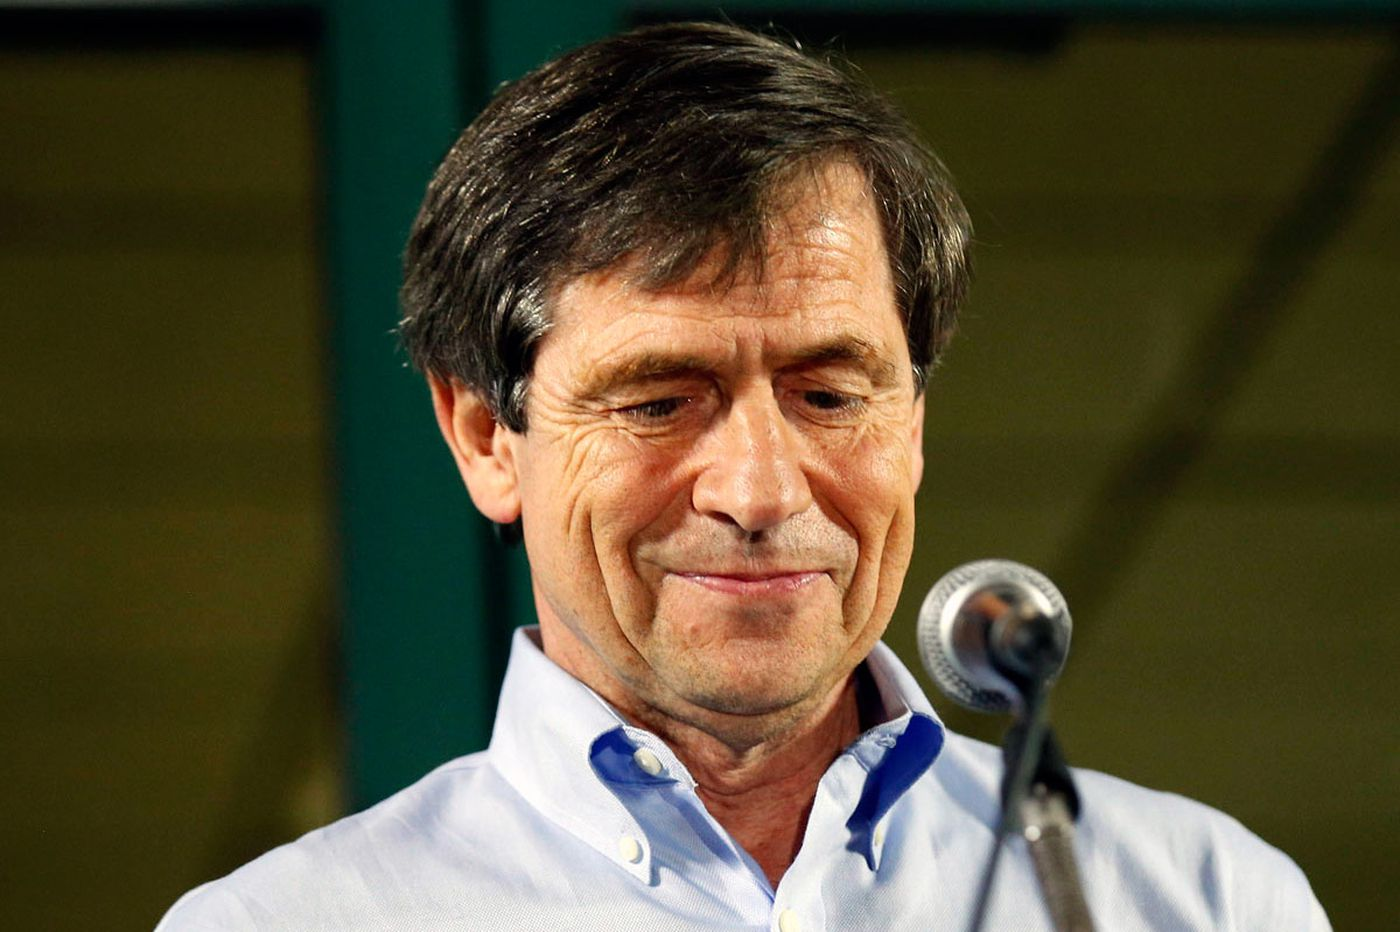 In Senate race, Sestak was squeezed out by rivals